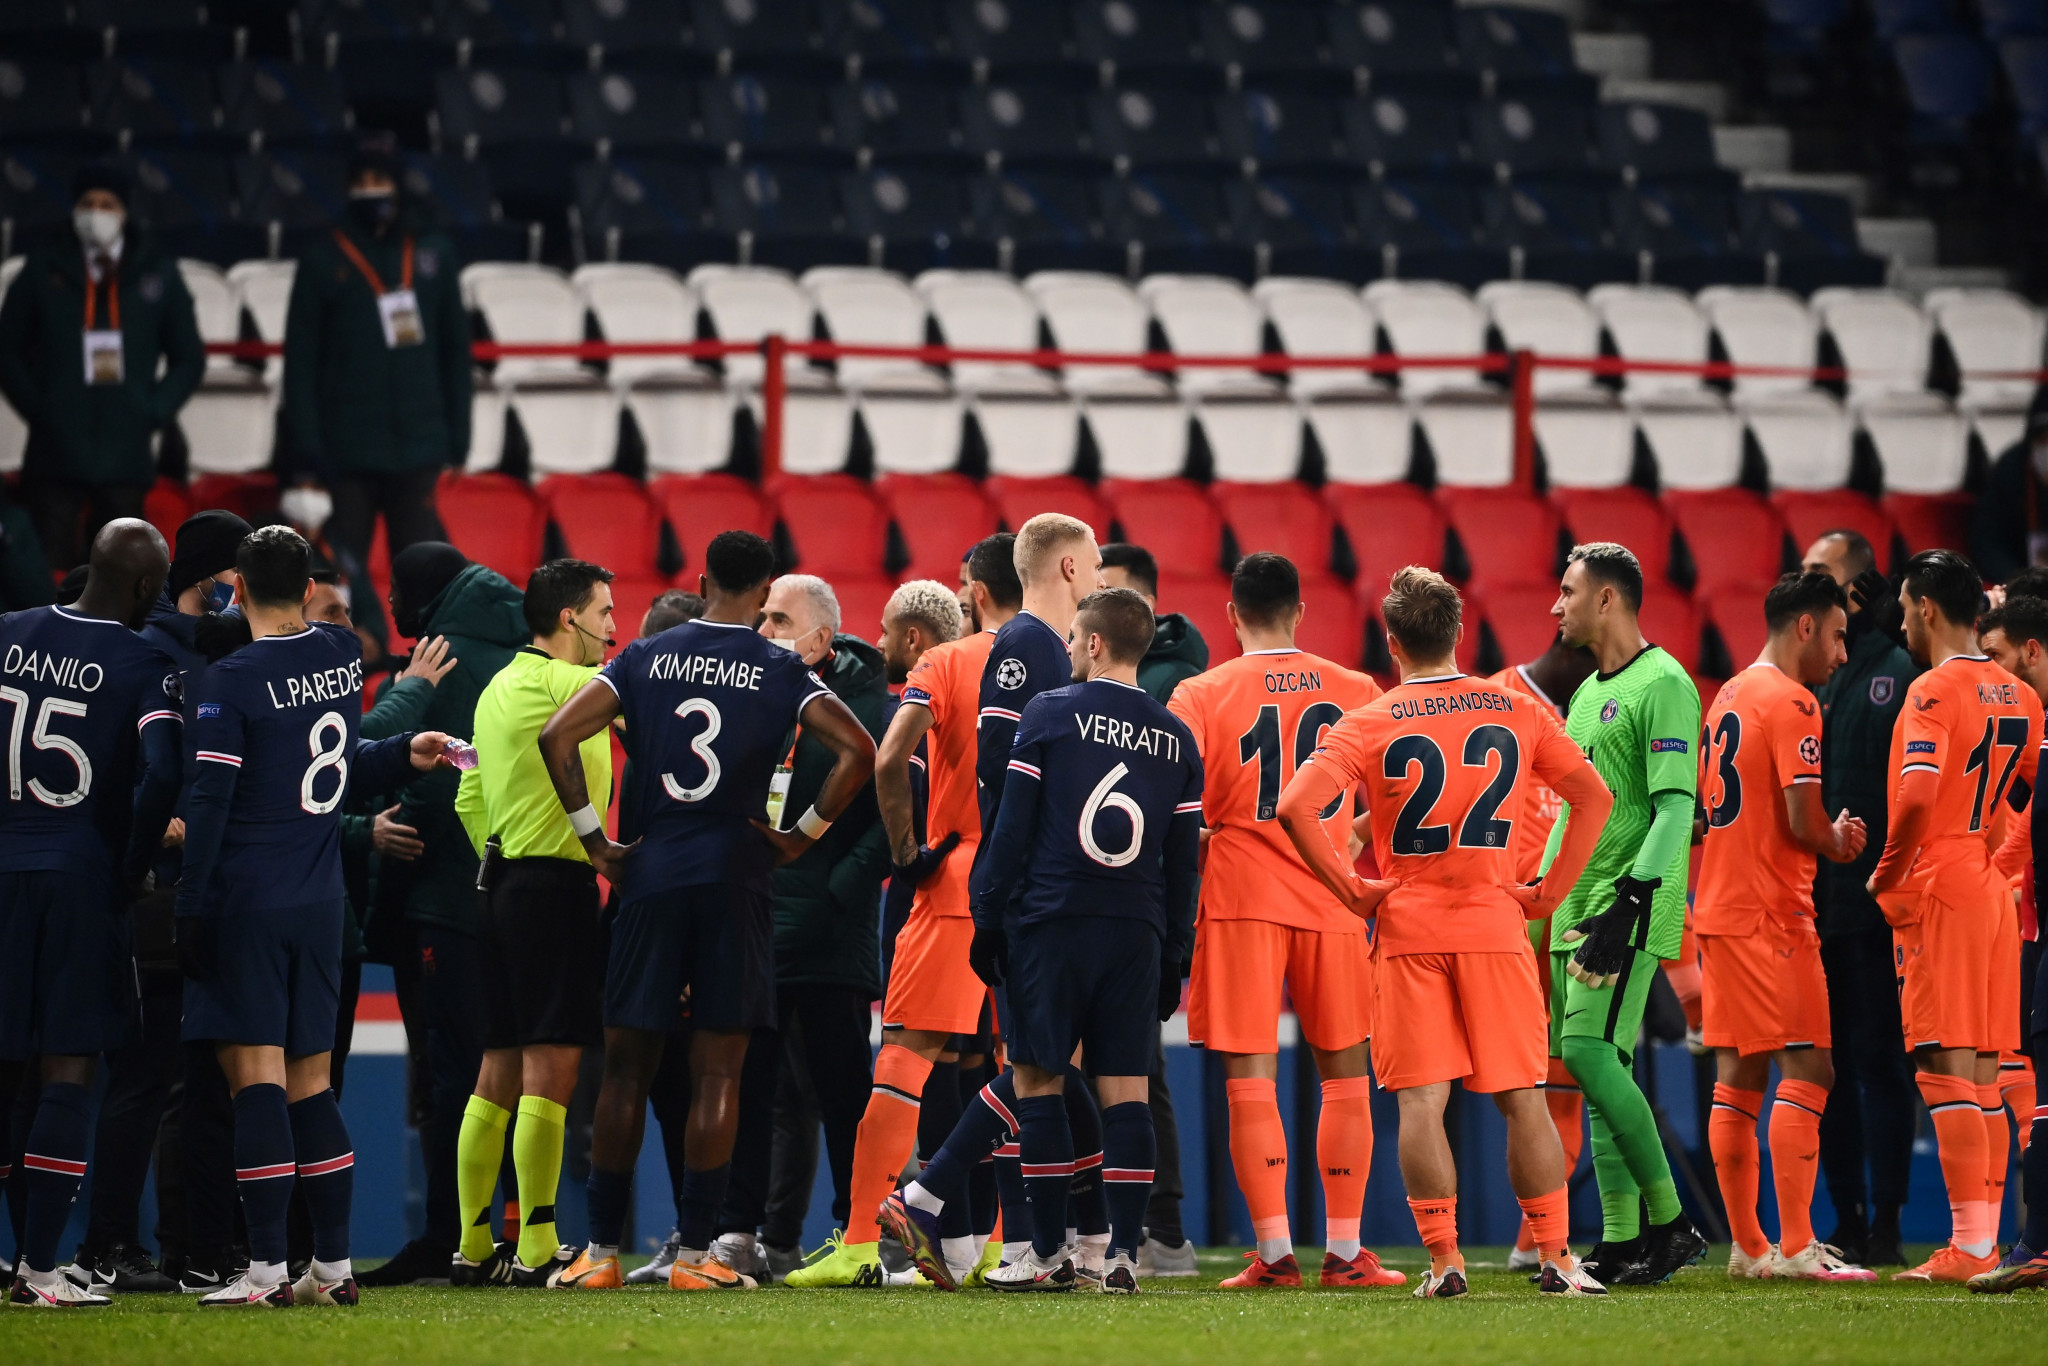 PSG and Başakşehir make anti-racism stance before completing match suspended over fourth official comment